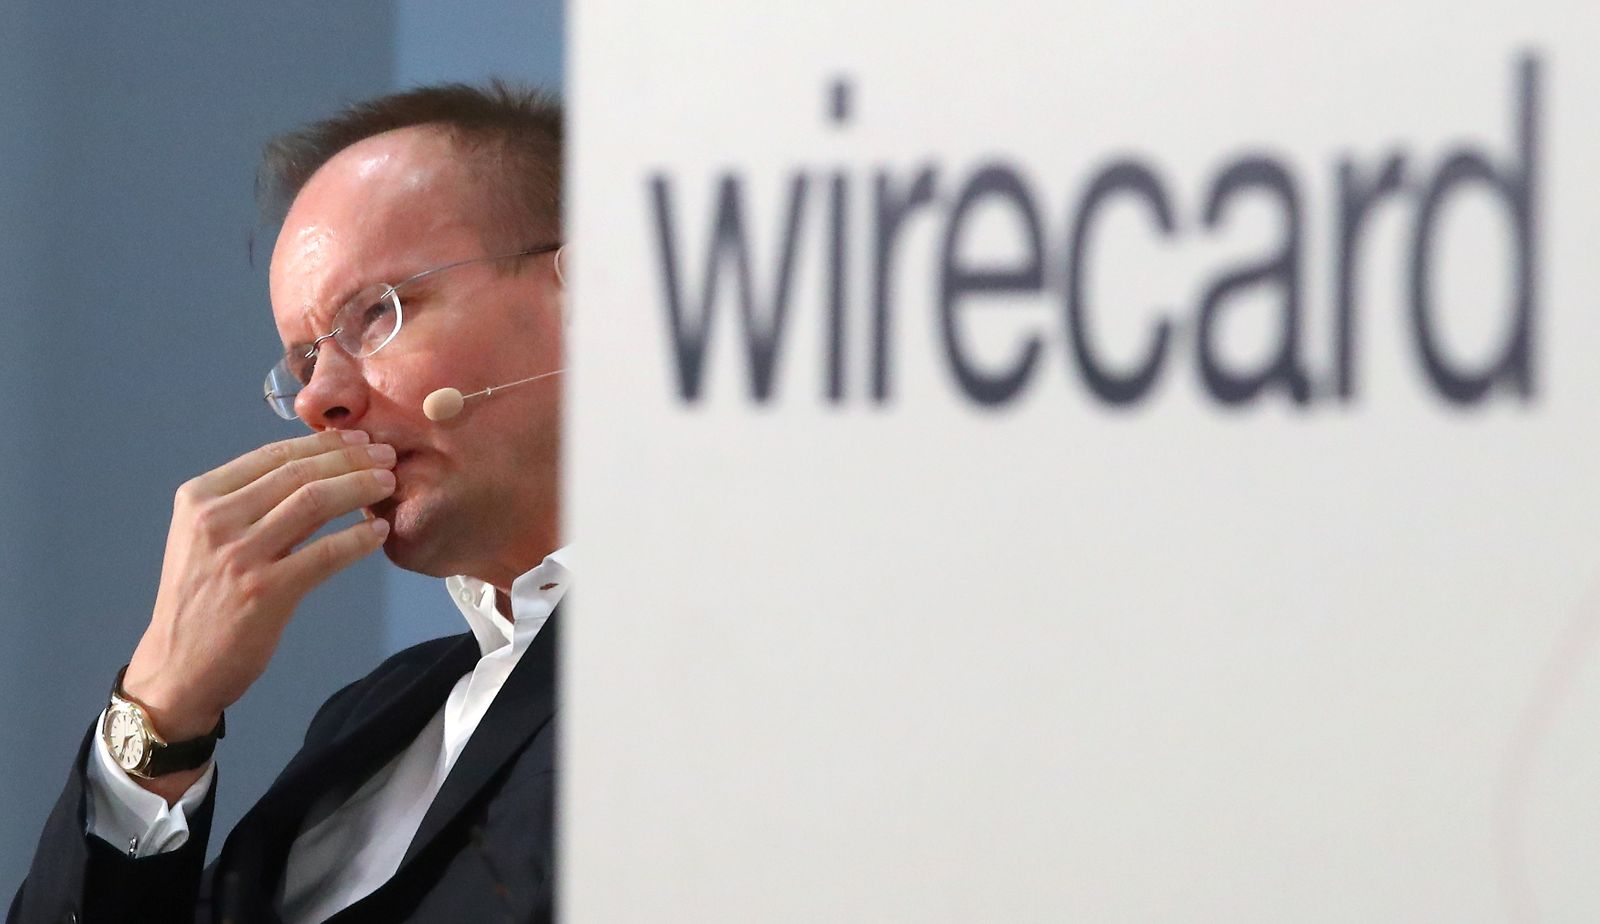 FILE PHOTO: Braun of Wirecard AG attends the company's annual news conference in Aschheim